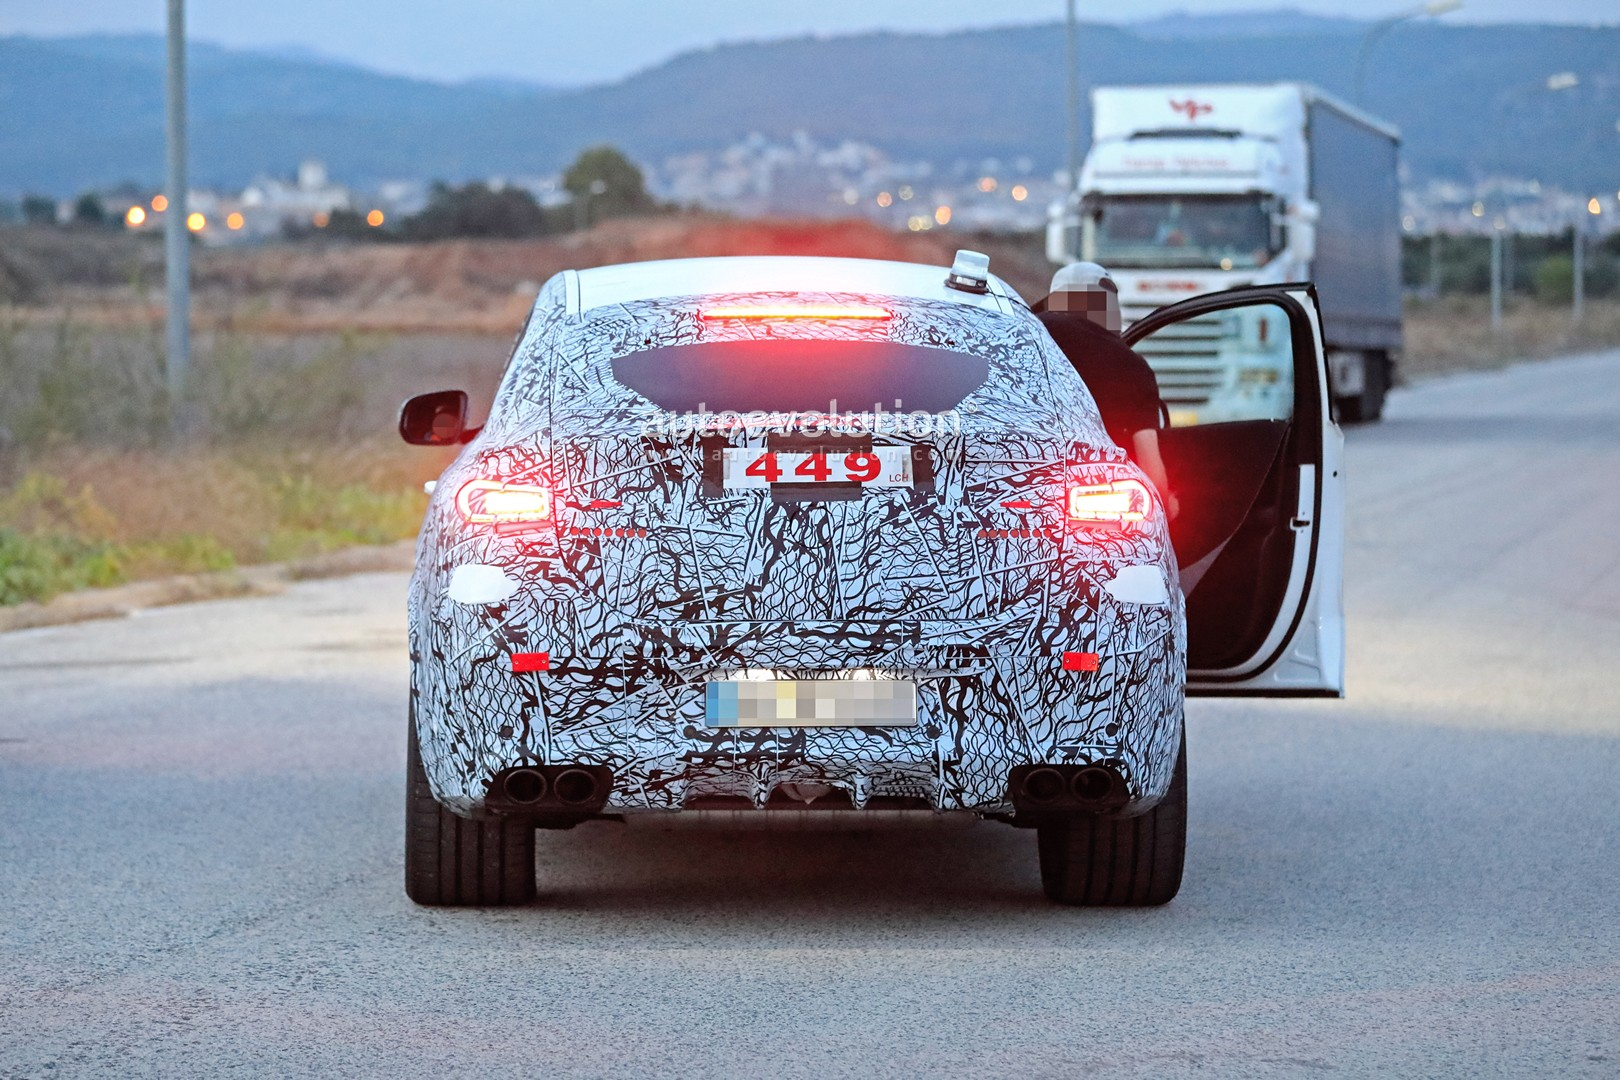 mercedes-a​mg-gle-53-​coupe-make​s-spyshot-​debut-with​-quad-exha​ust-tips-1​30628_1